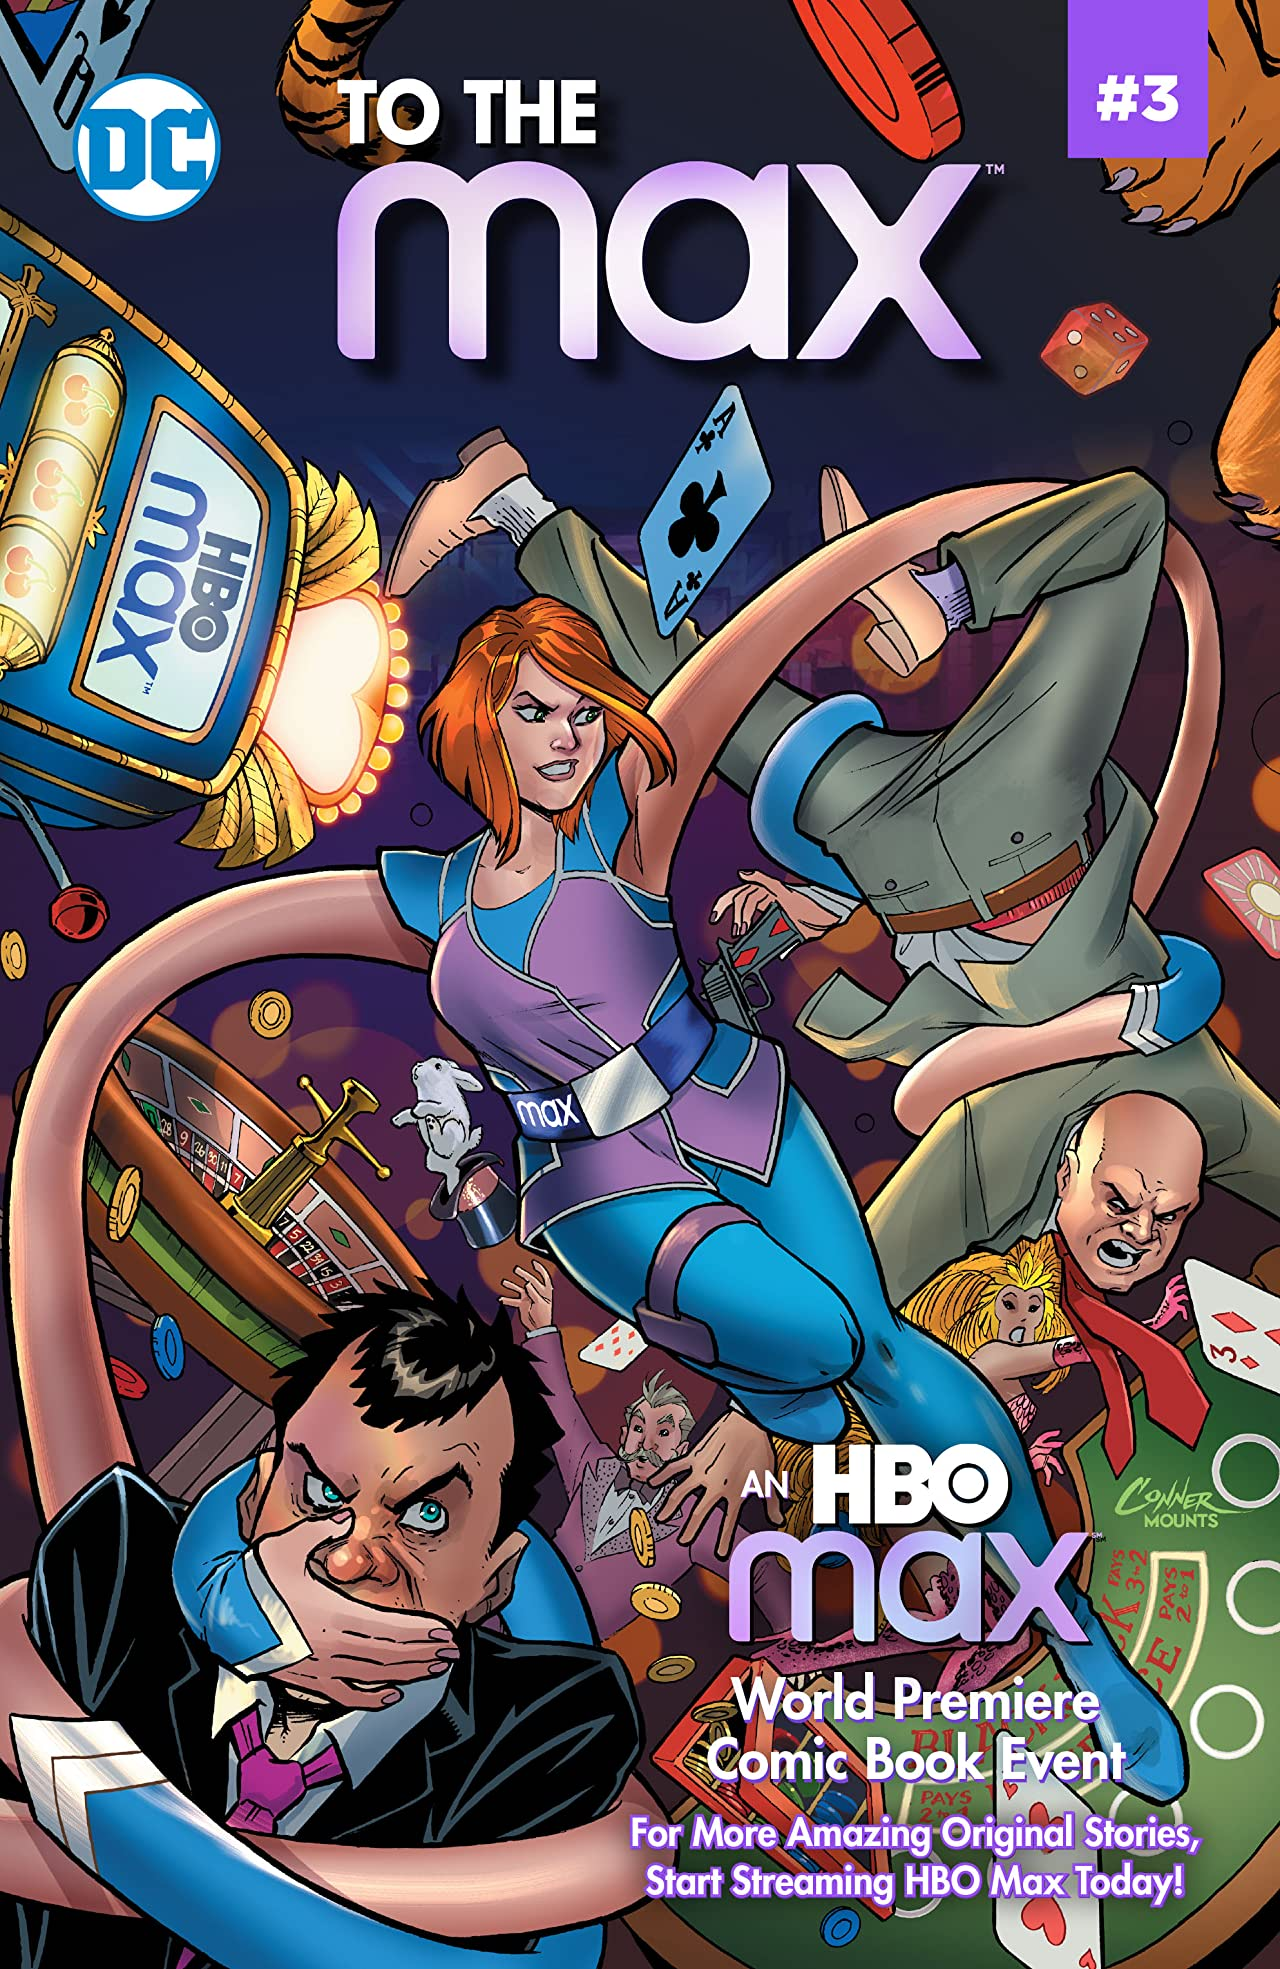 HBO MAX Digital Comic (2020) #3